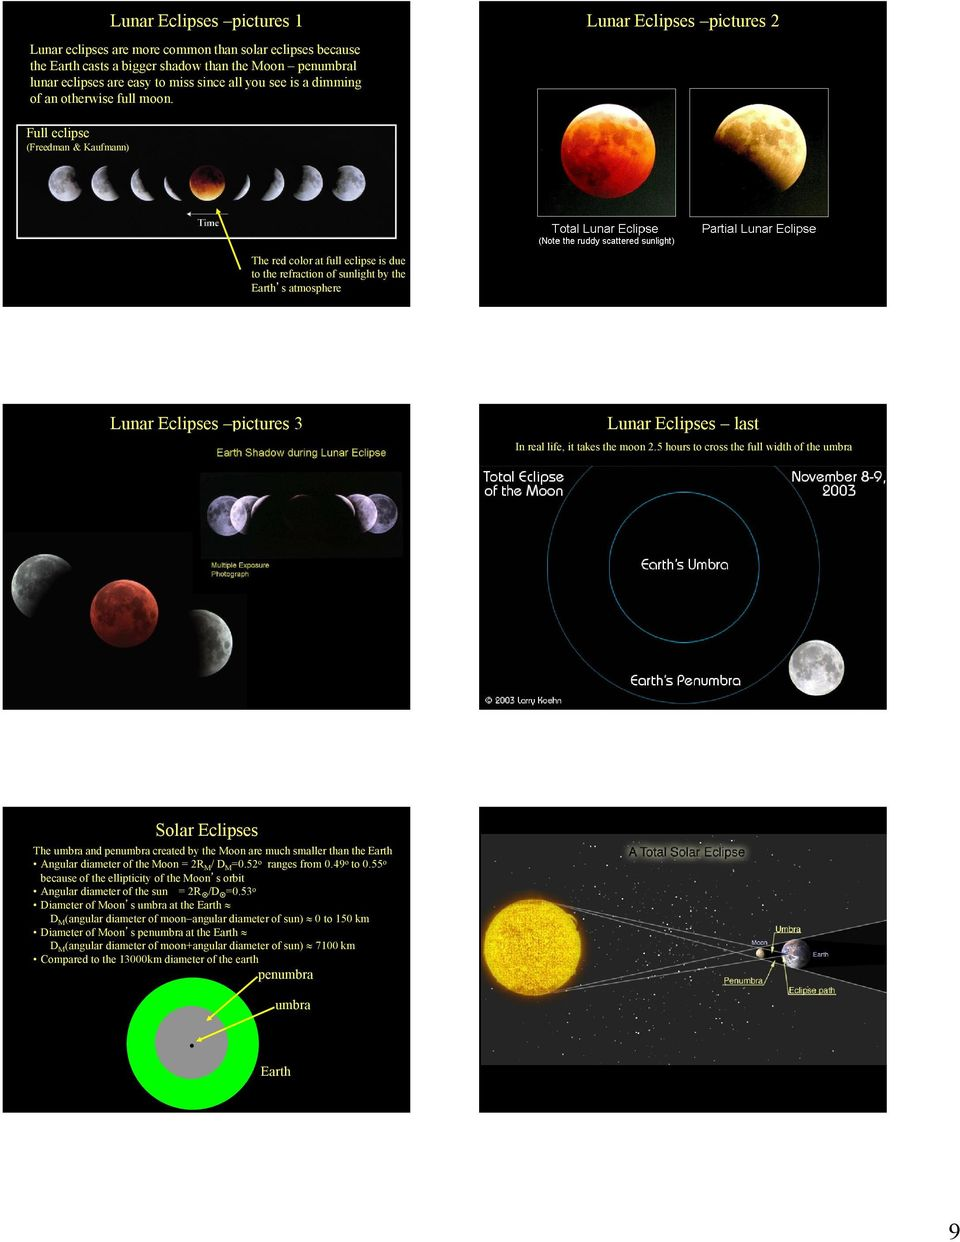 Lunar Eclipses pictures 2 Full eclipse (Freedman & Kaufmann) The red color at full eclipse is due to the refraction of sunlight by the Earth s atmosphere Lunar Eclipses pictures 3 Lunar Eclipses last